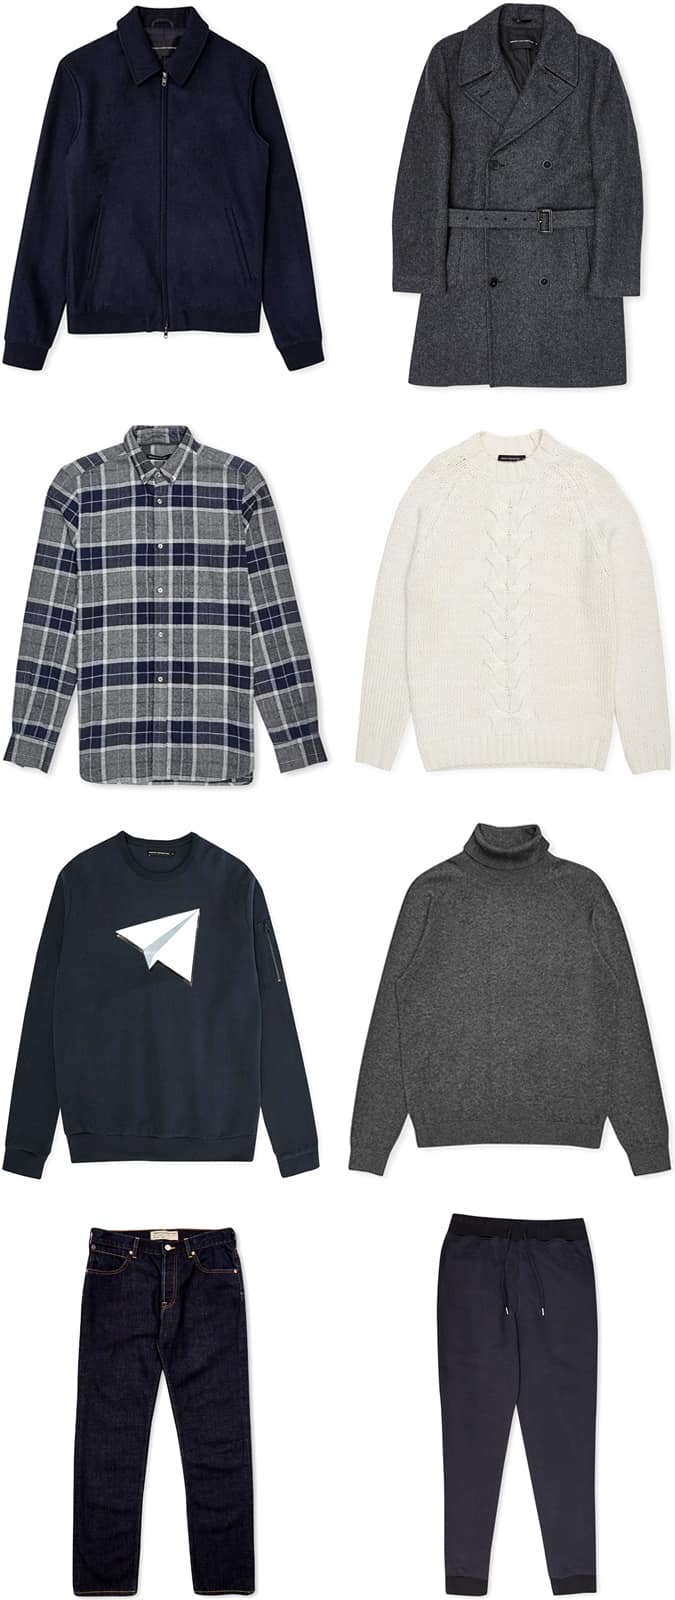 Introducing: The New Look French Connection Menswear